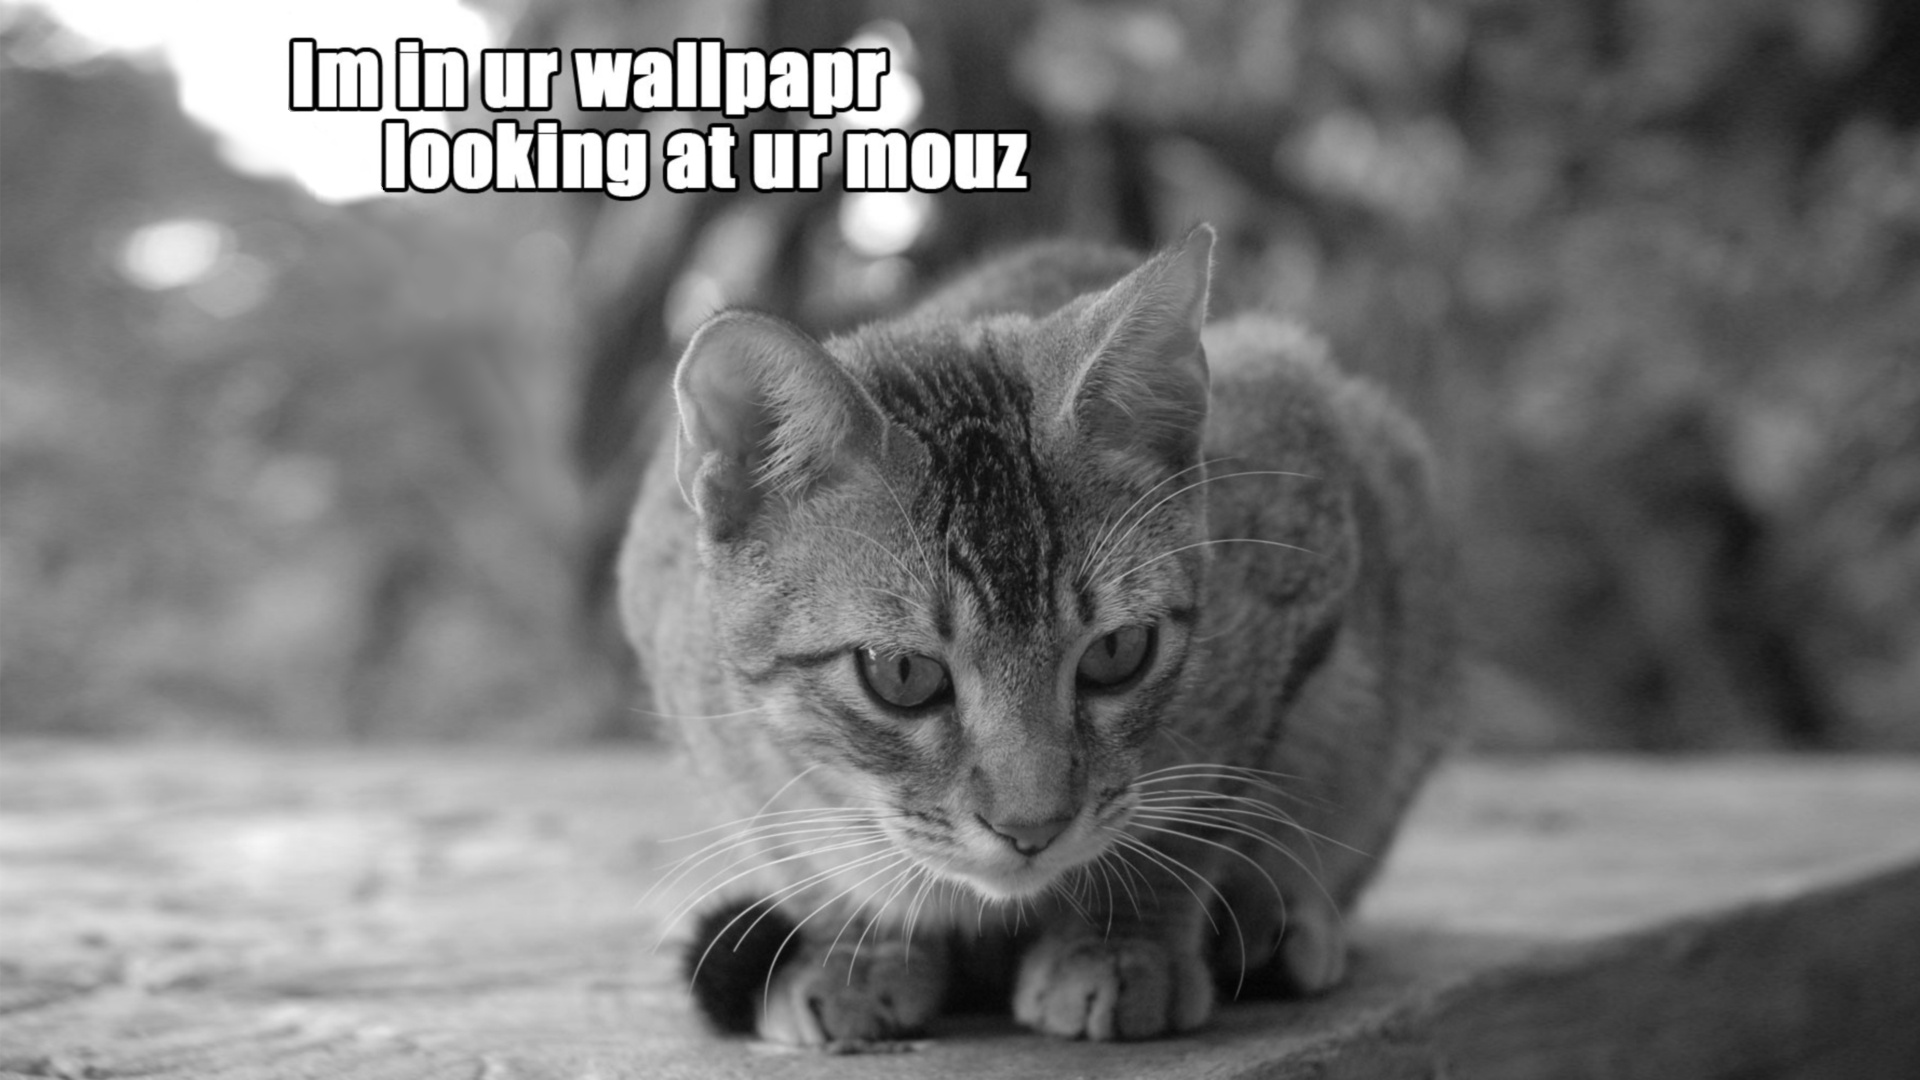 Cats Humor Wallpaper 1920x1080 Cats Humor Mouse Staring Monochrome 1920x1080